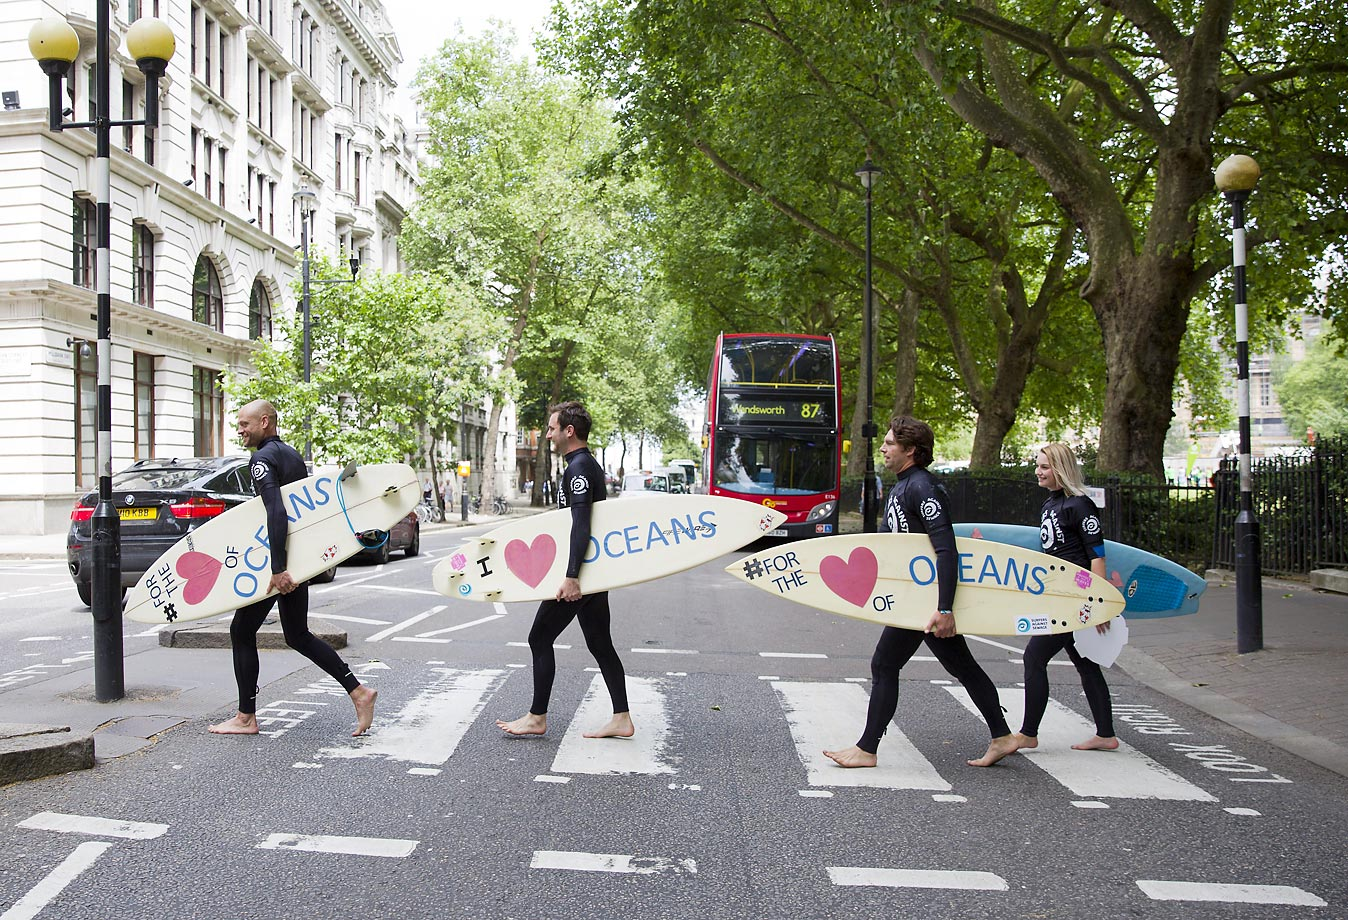 Climate change campaigners in wetsuits holding surfboards cross the road by the Houses of Parliament in London.